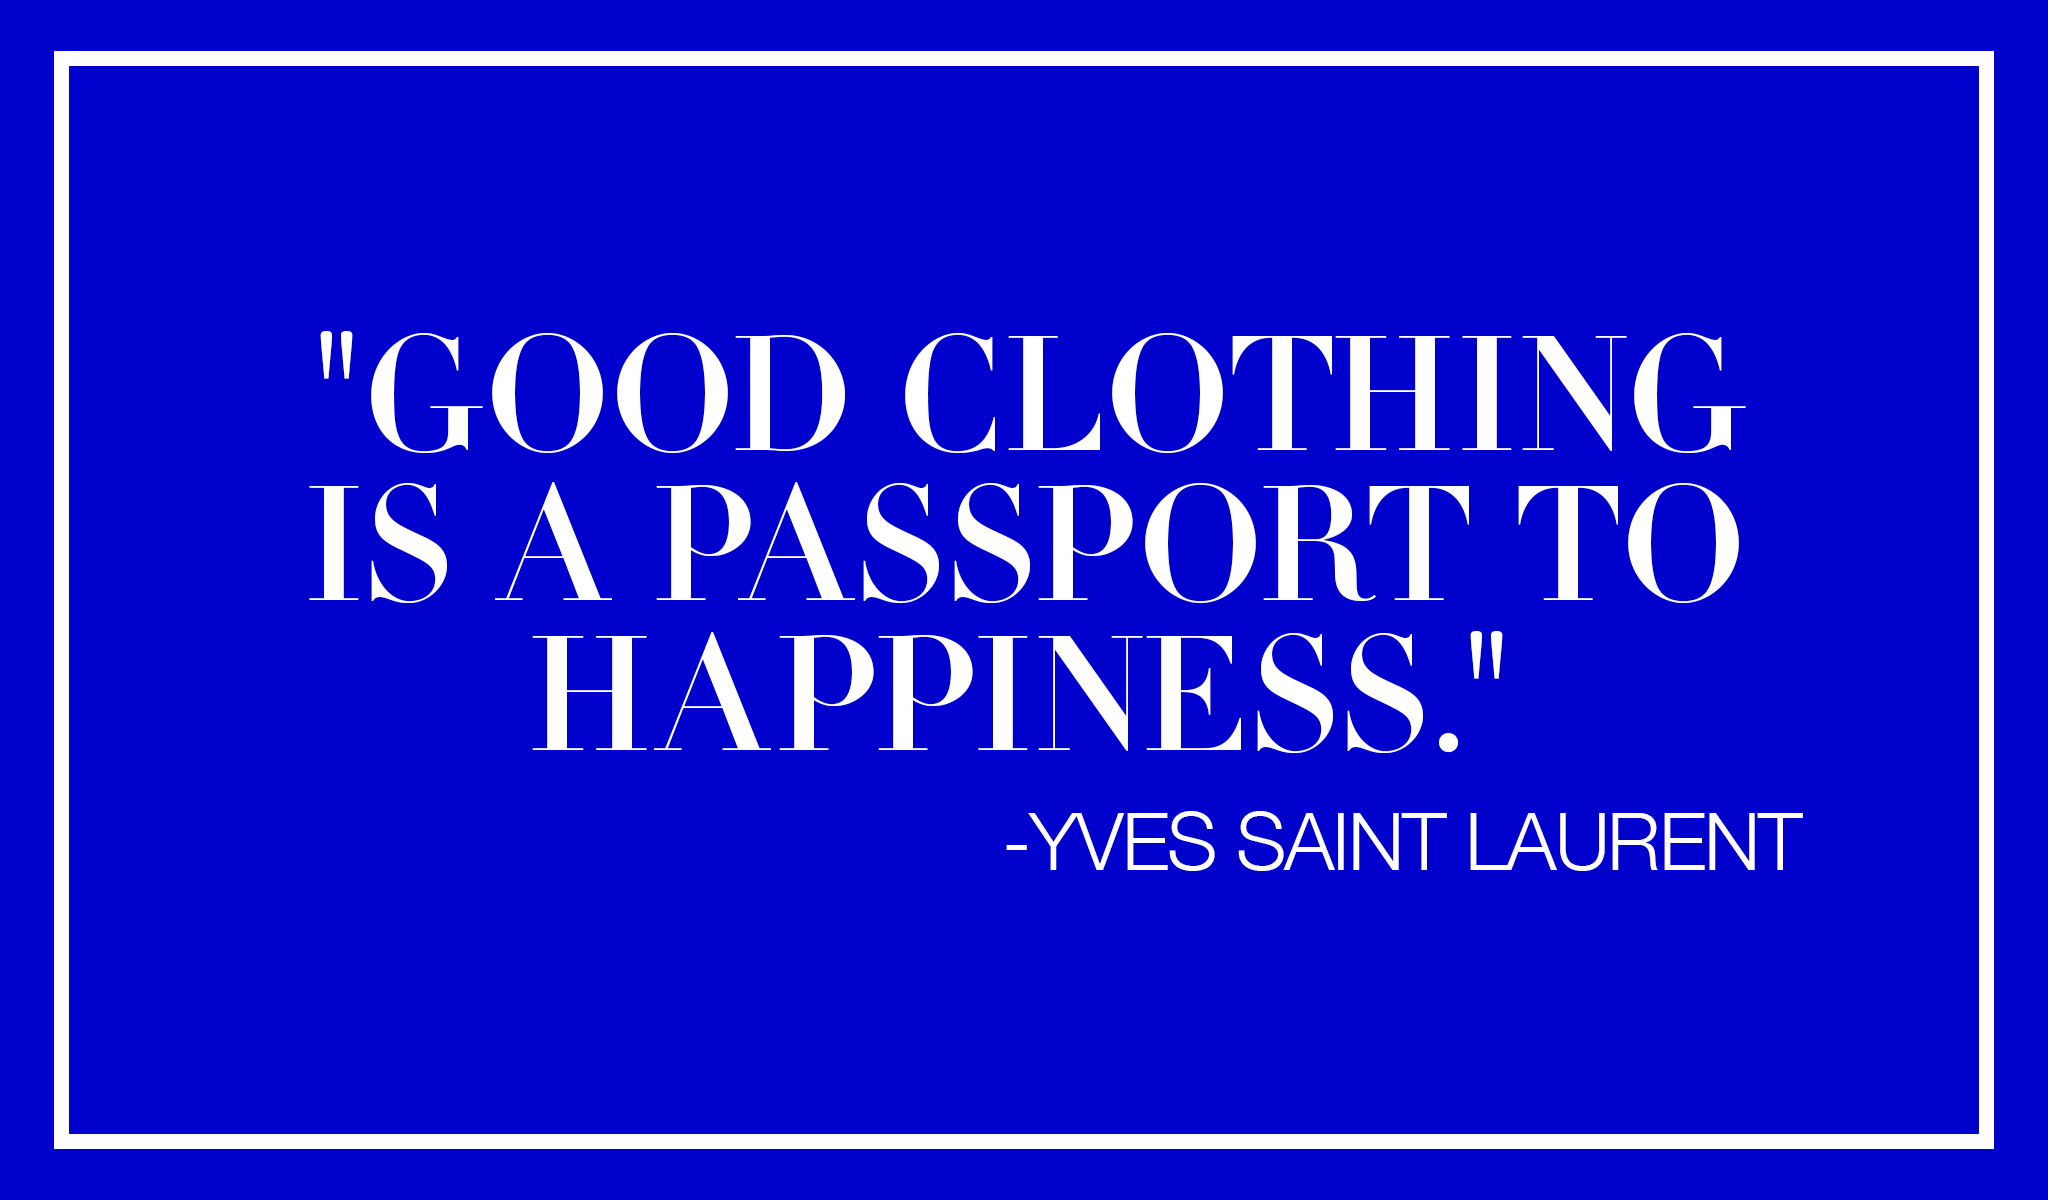 Dress Code Recess Los Angeles Yves Saint Laurent YSL QUOTES passport to happiness